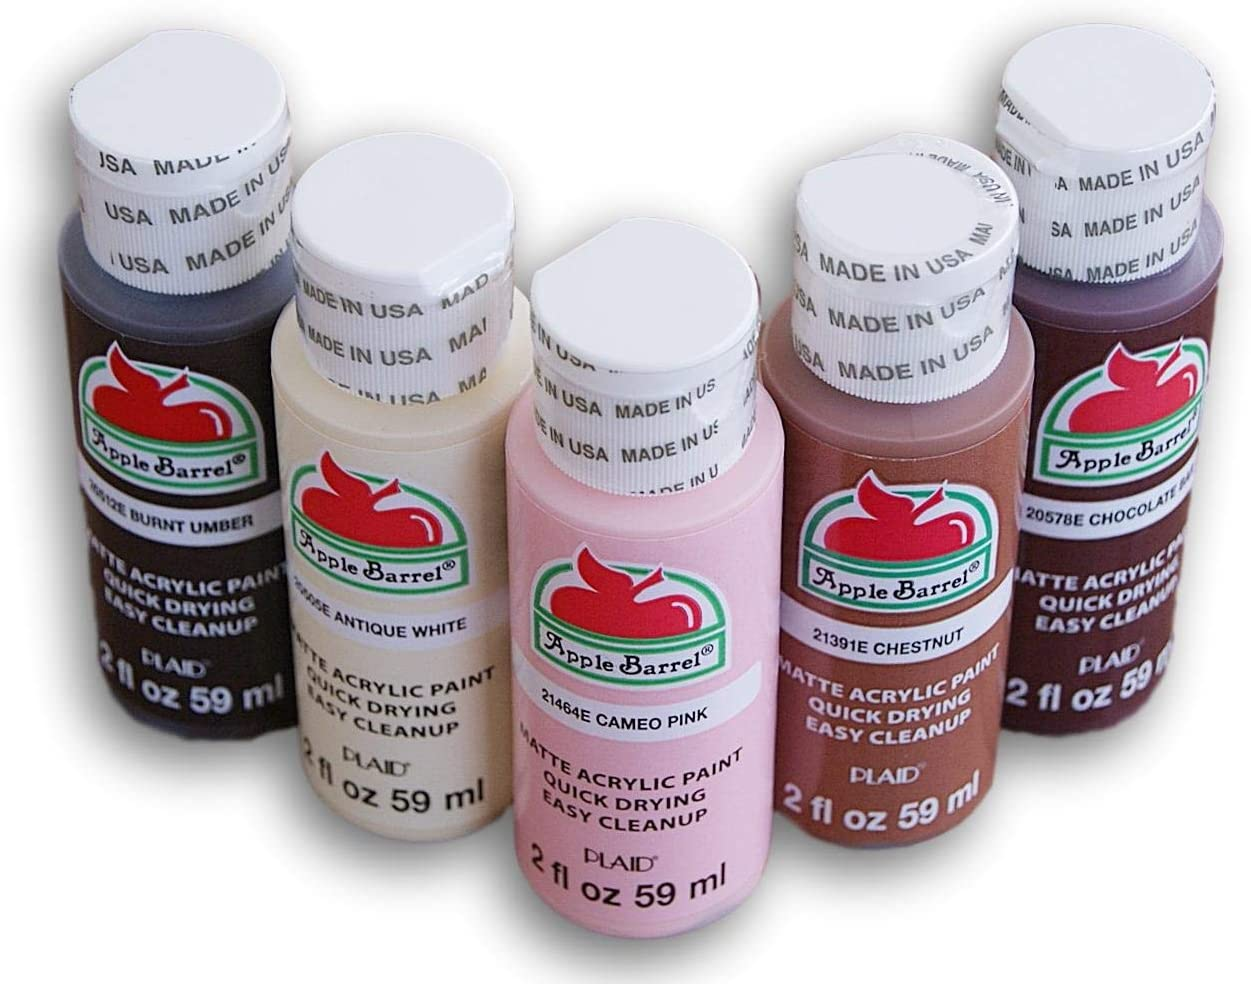 Skin Tones Acrylic Paint Set - Burnt Umber, Chocolate Bar, Antique White, Cameo Pink, and Chestnut